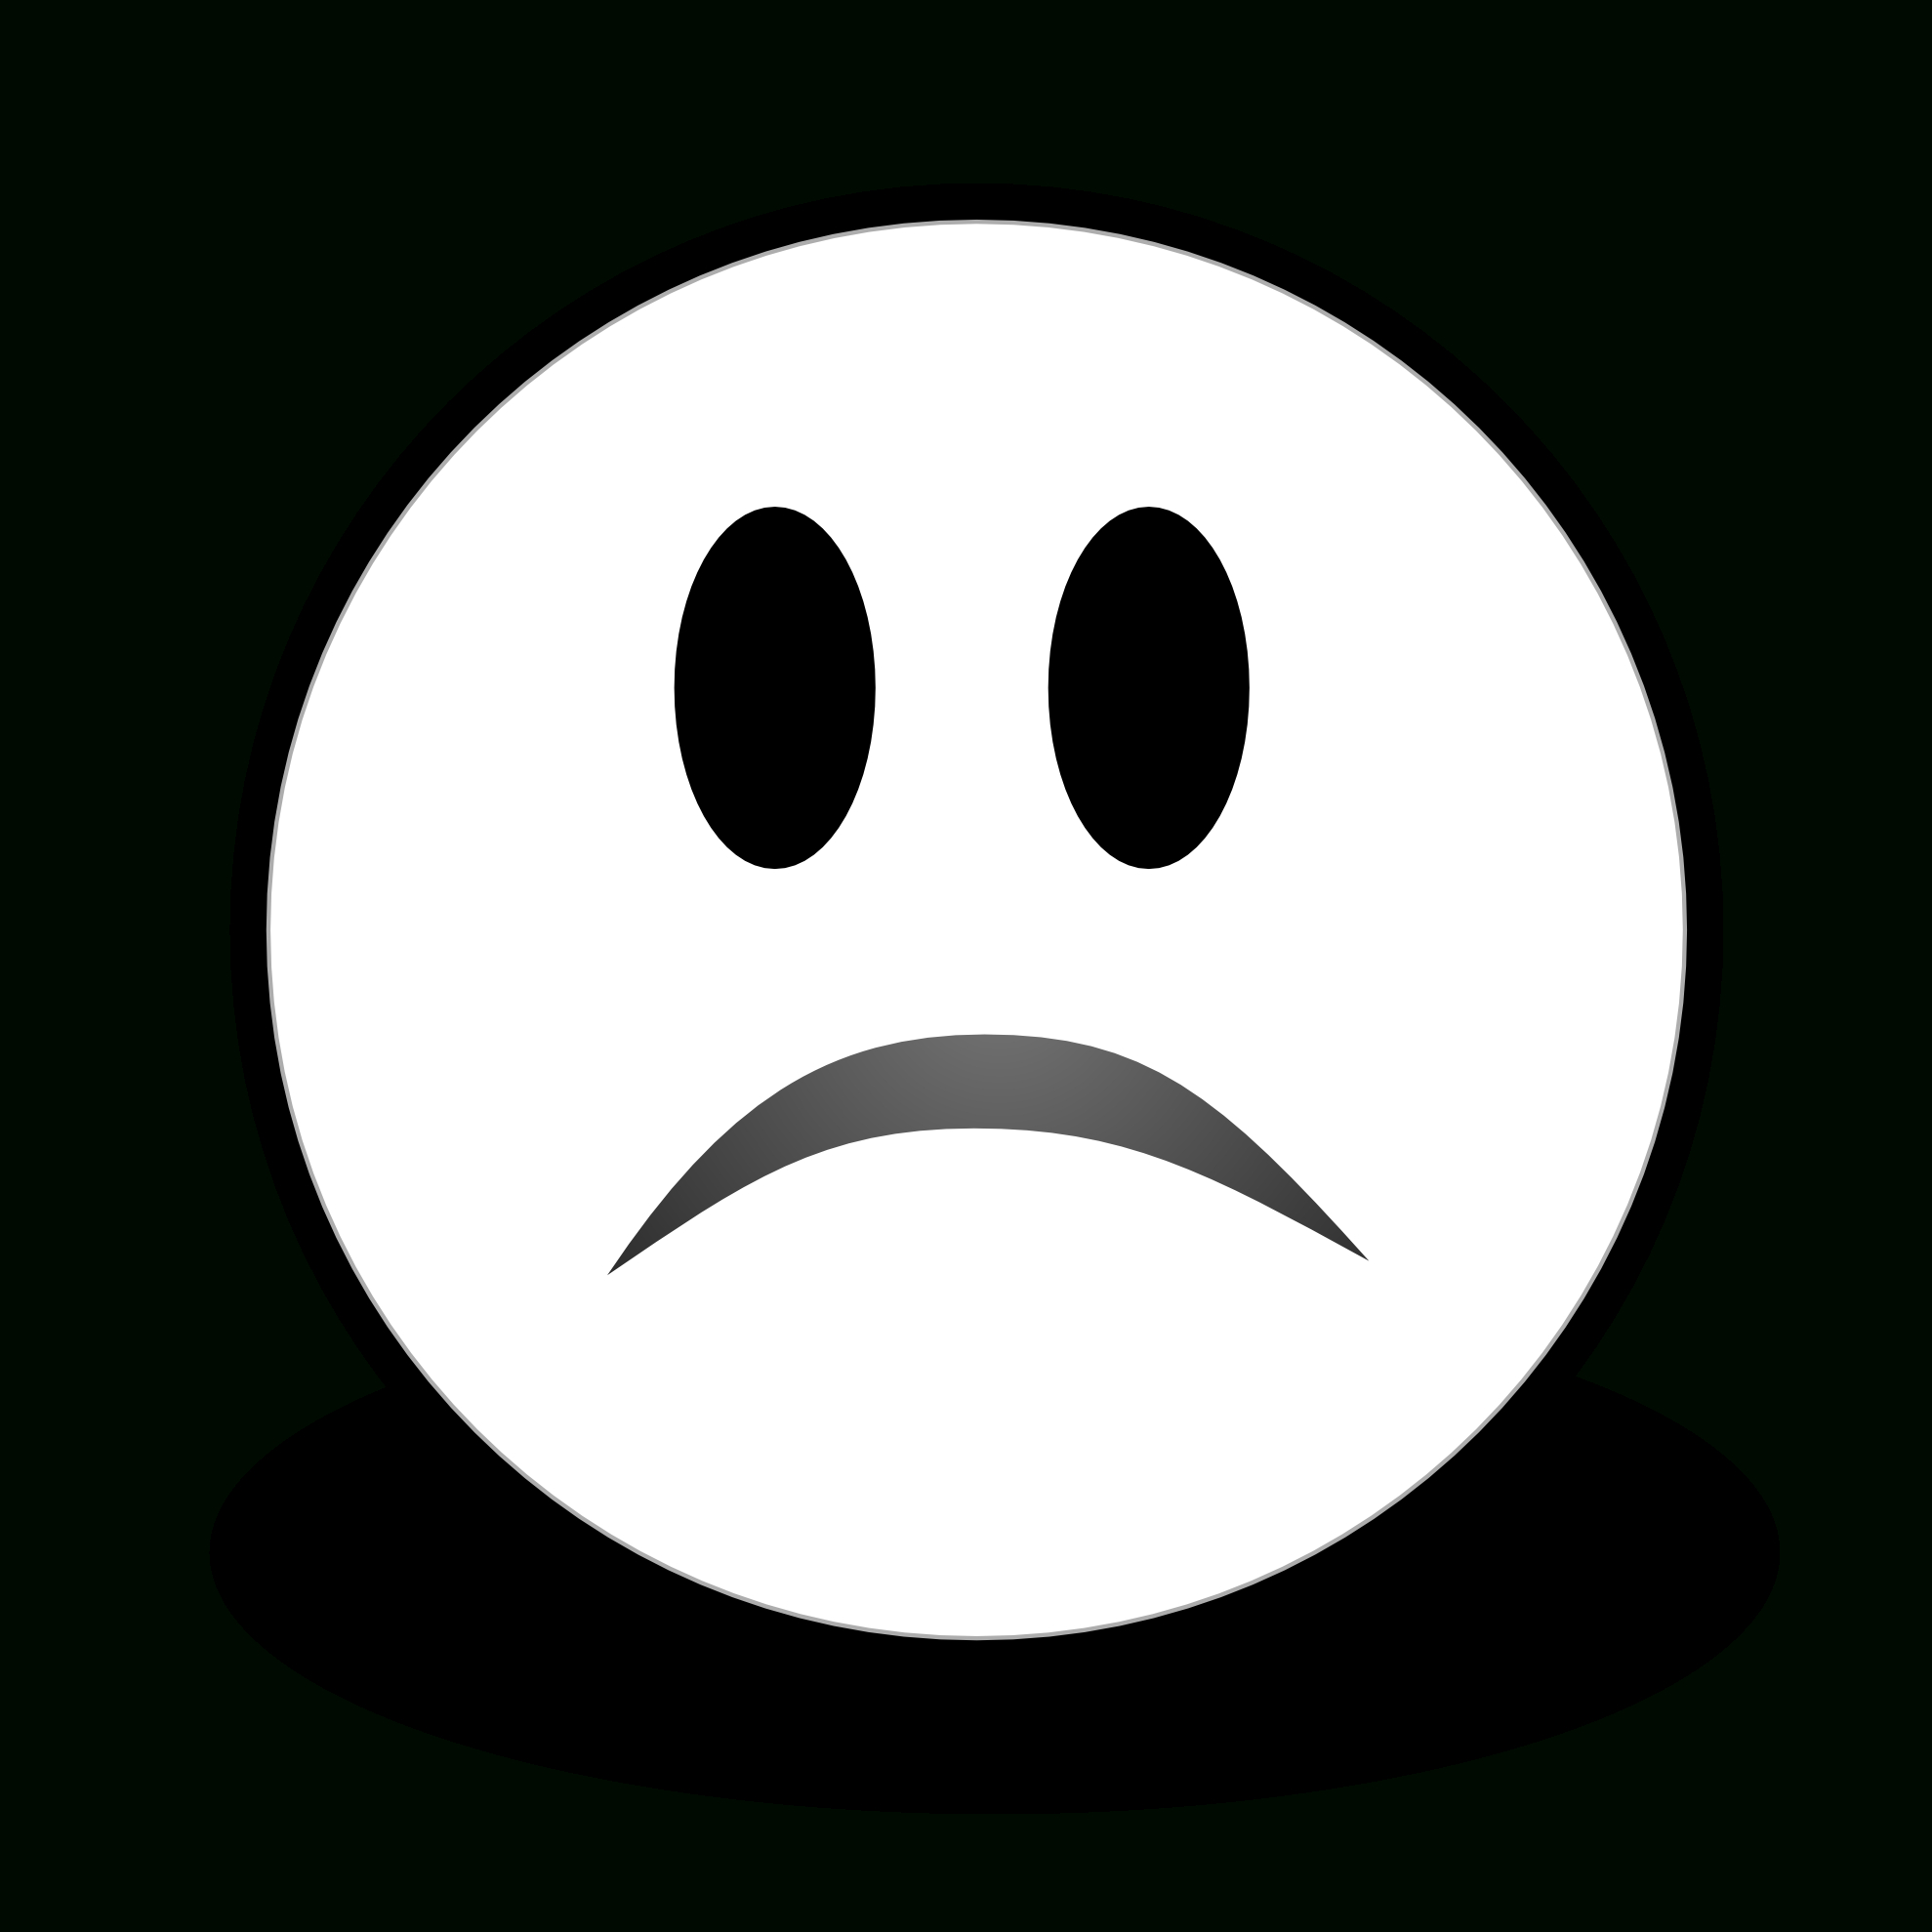 Free Sad Face Pictures Free, Download Free Clip Art, Free Clip Art - Free Printable Sad Faces